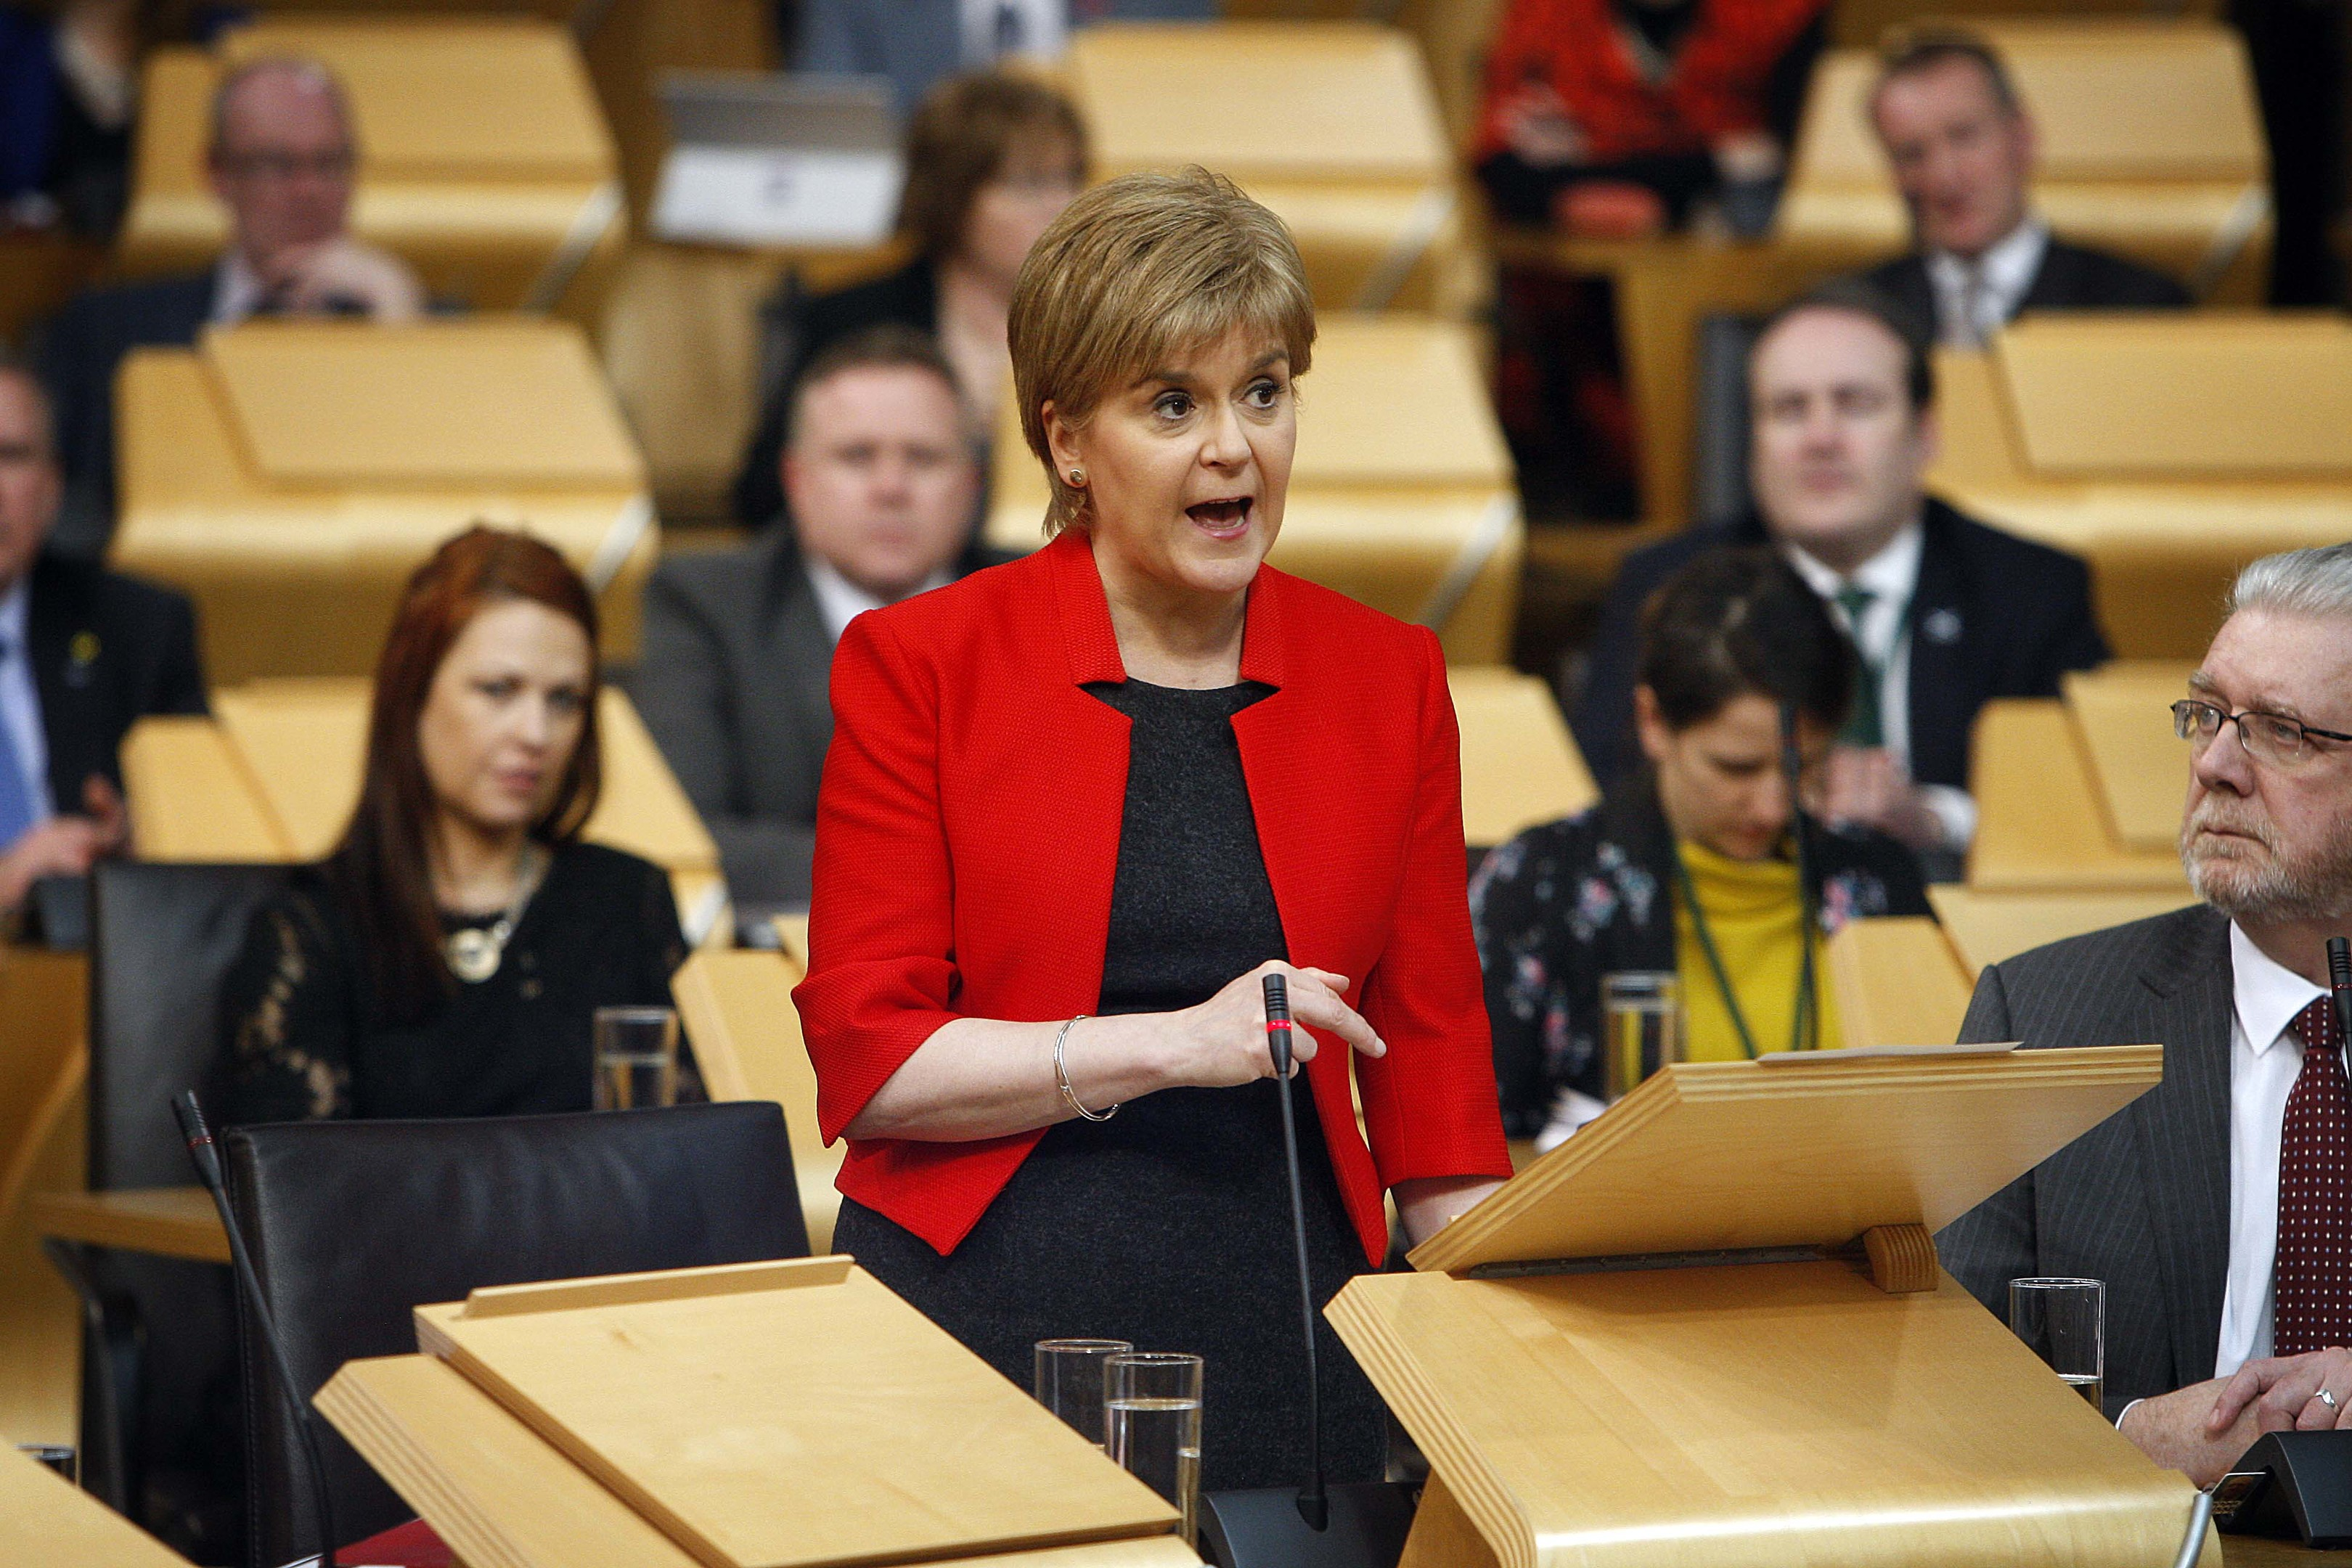 First Minister Nicola Sturgeon opens the debate.